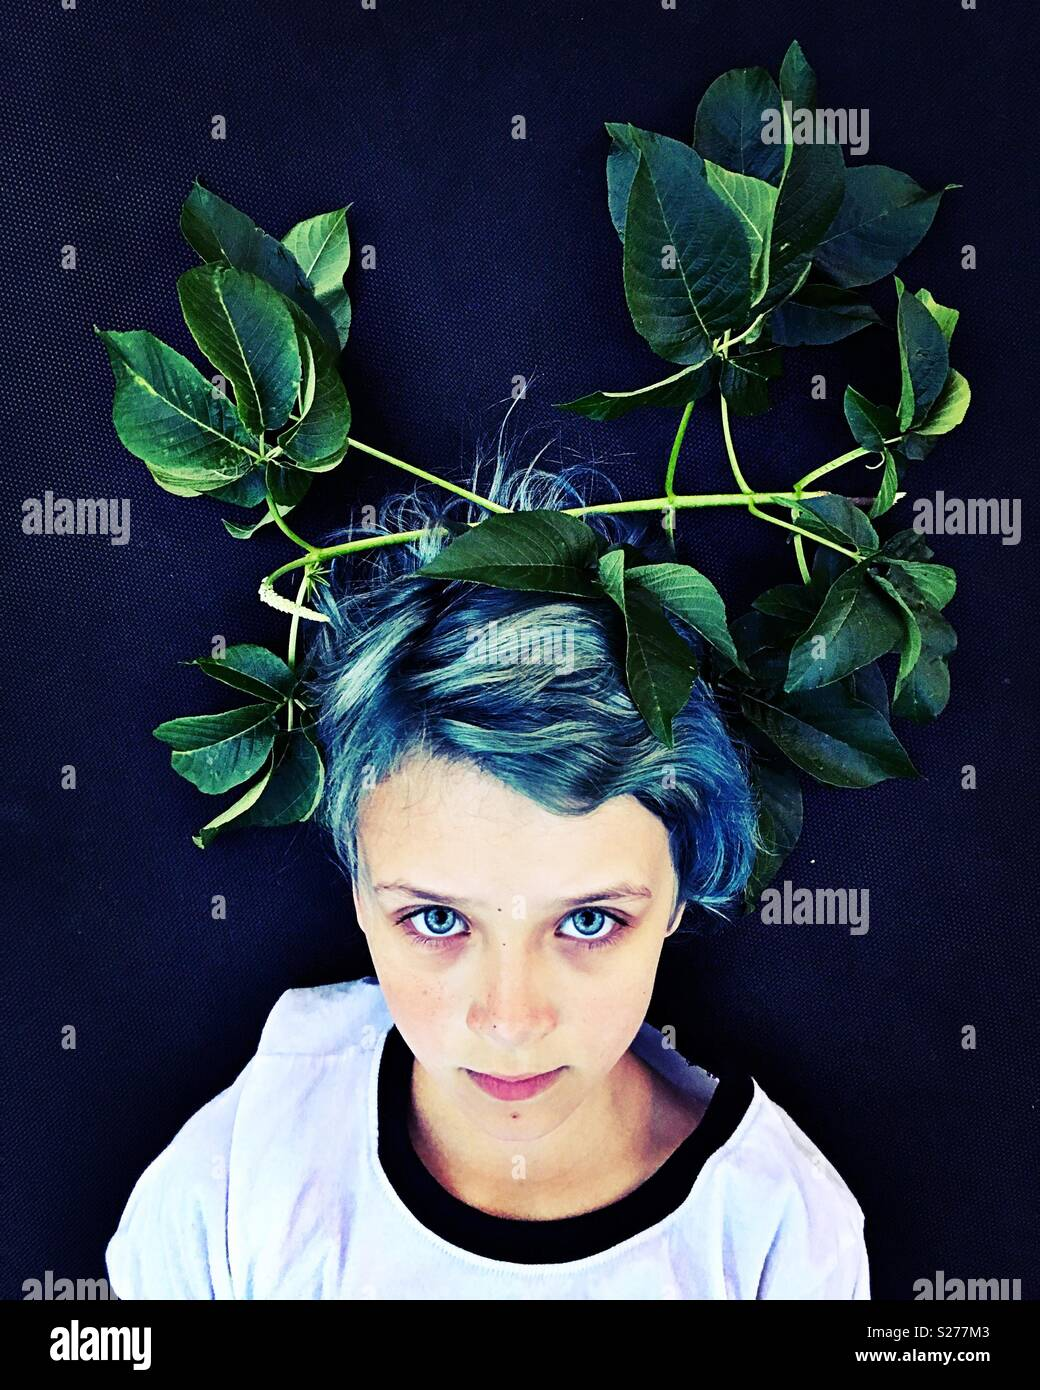 A child with leaves placed on top of her head. - Stock Image